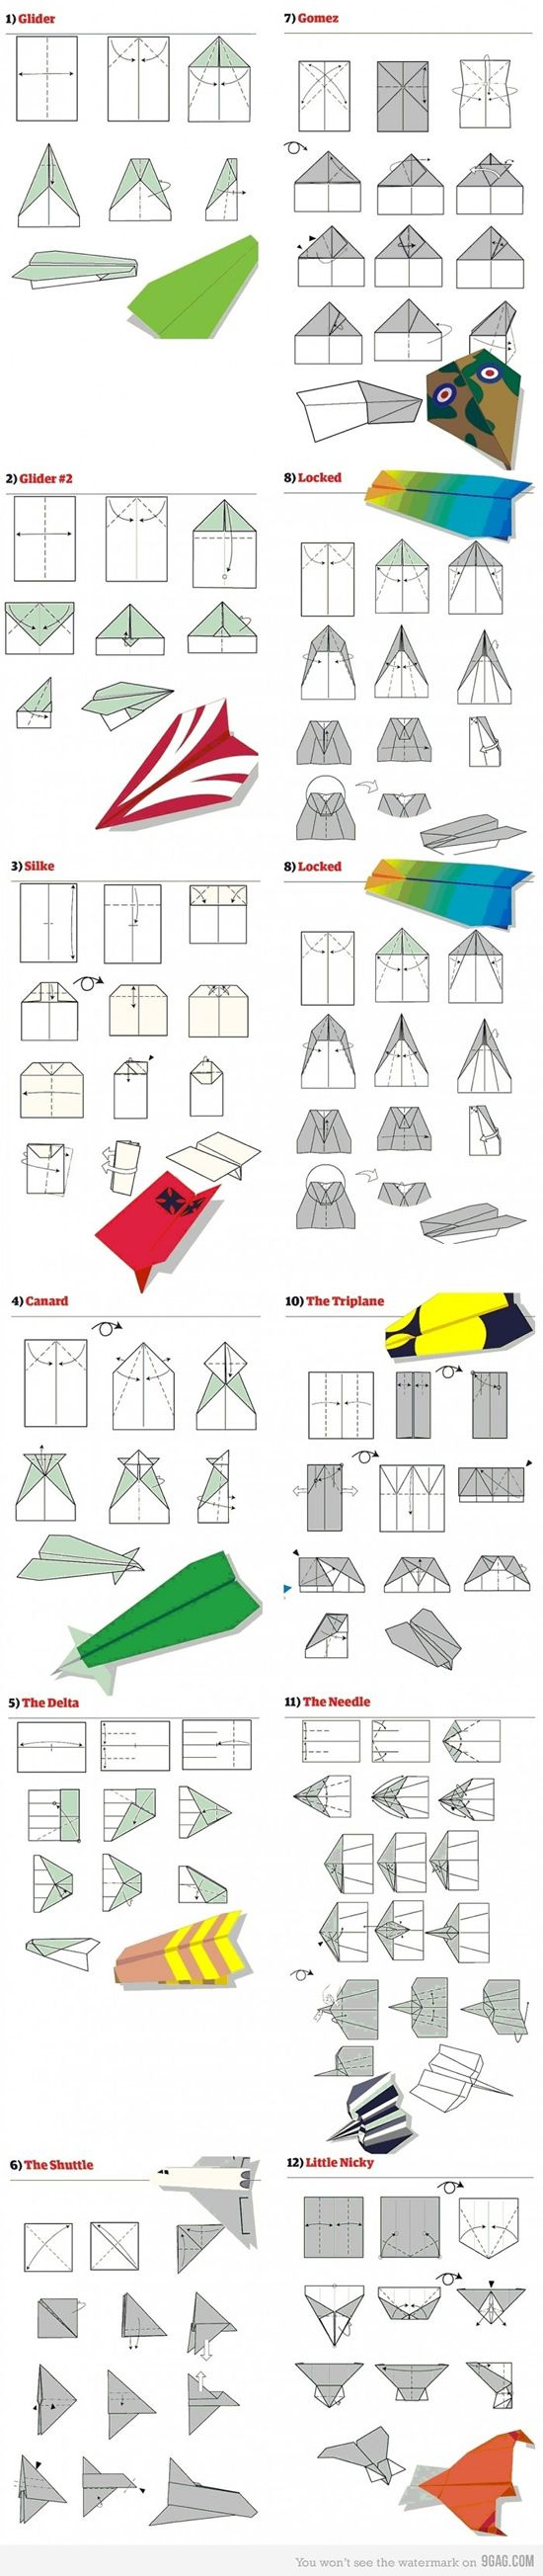 12 nice paper airplane plans! Would be fun to make with the grandkids!